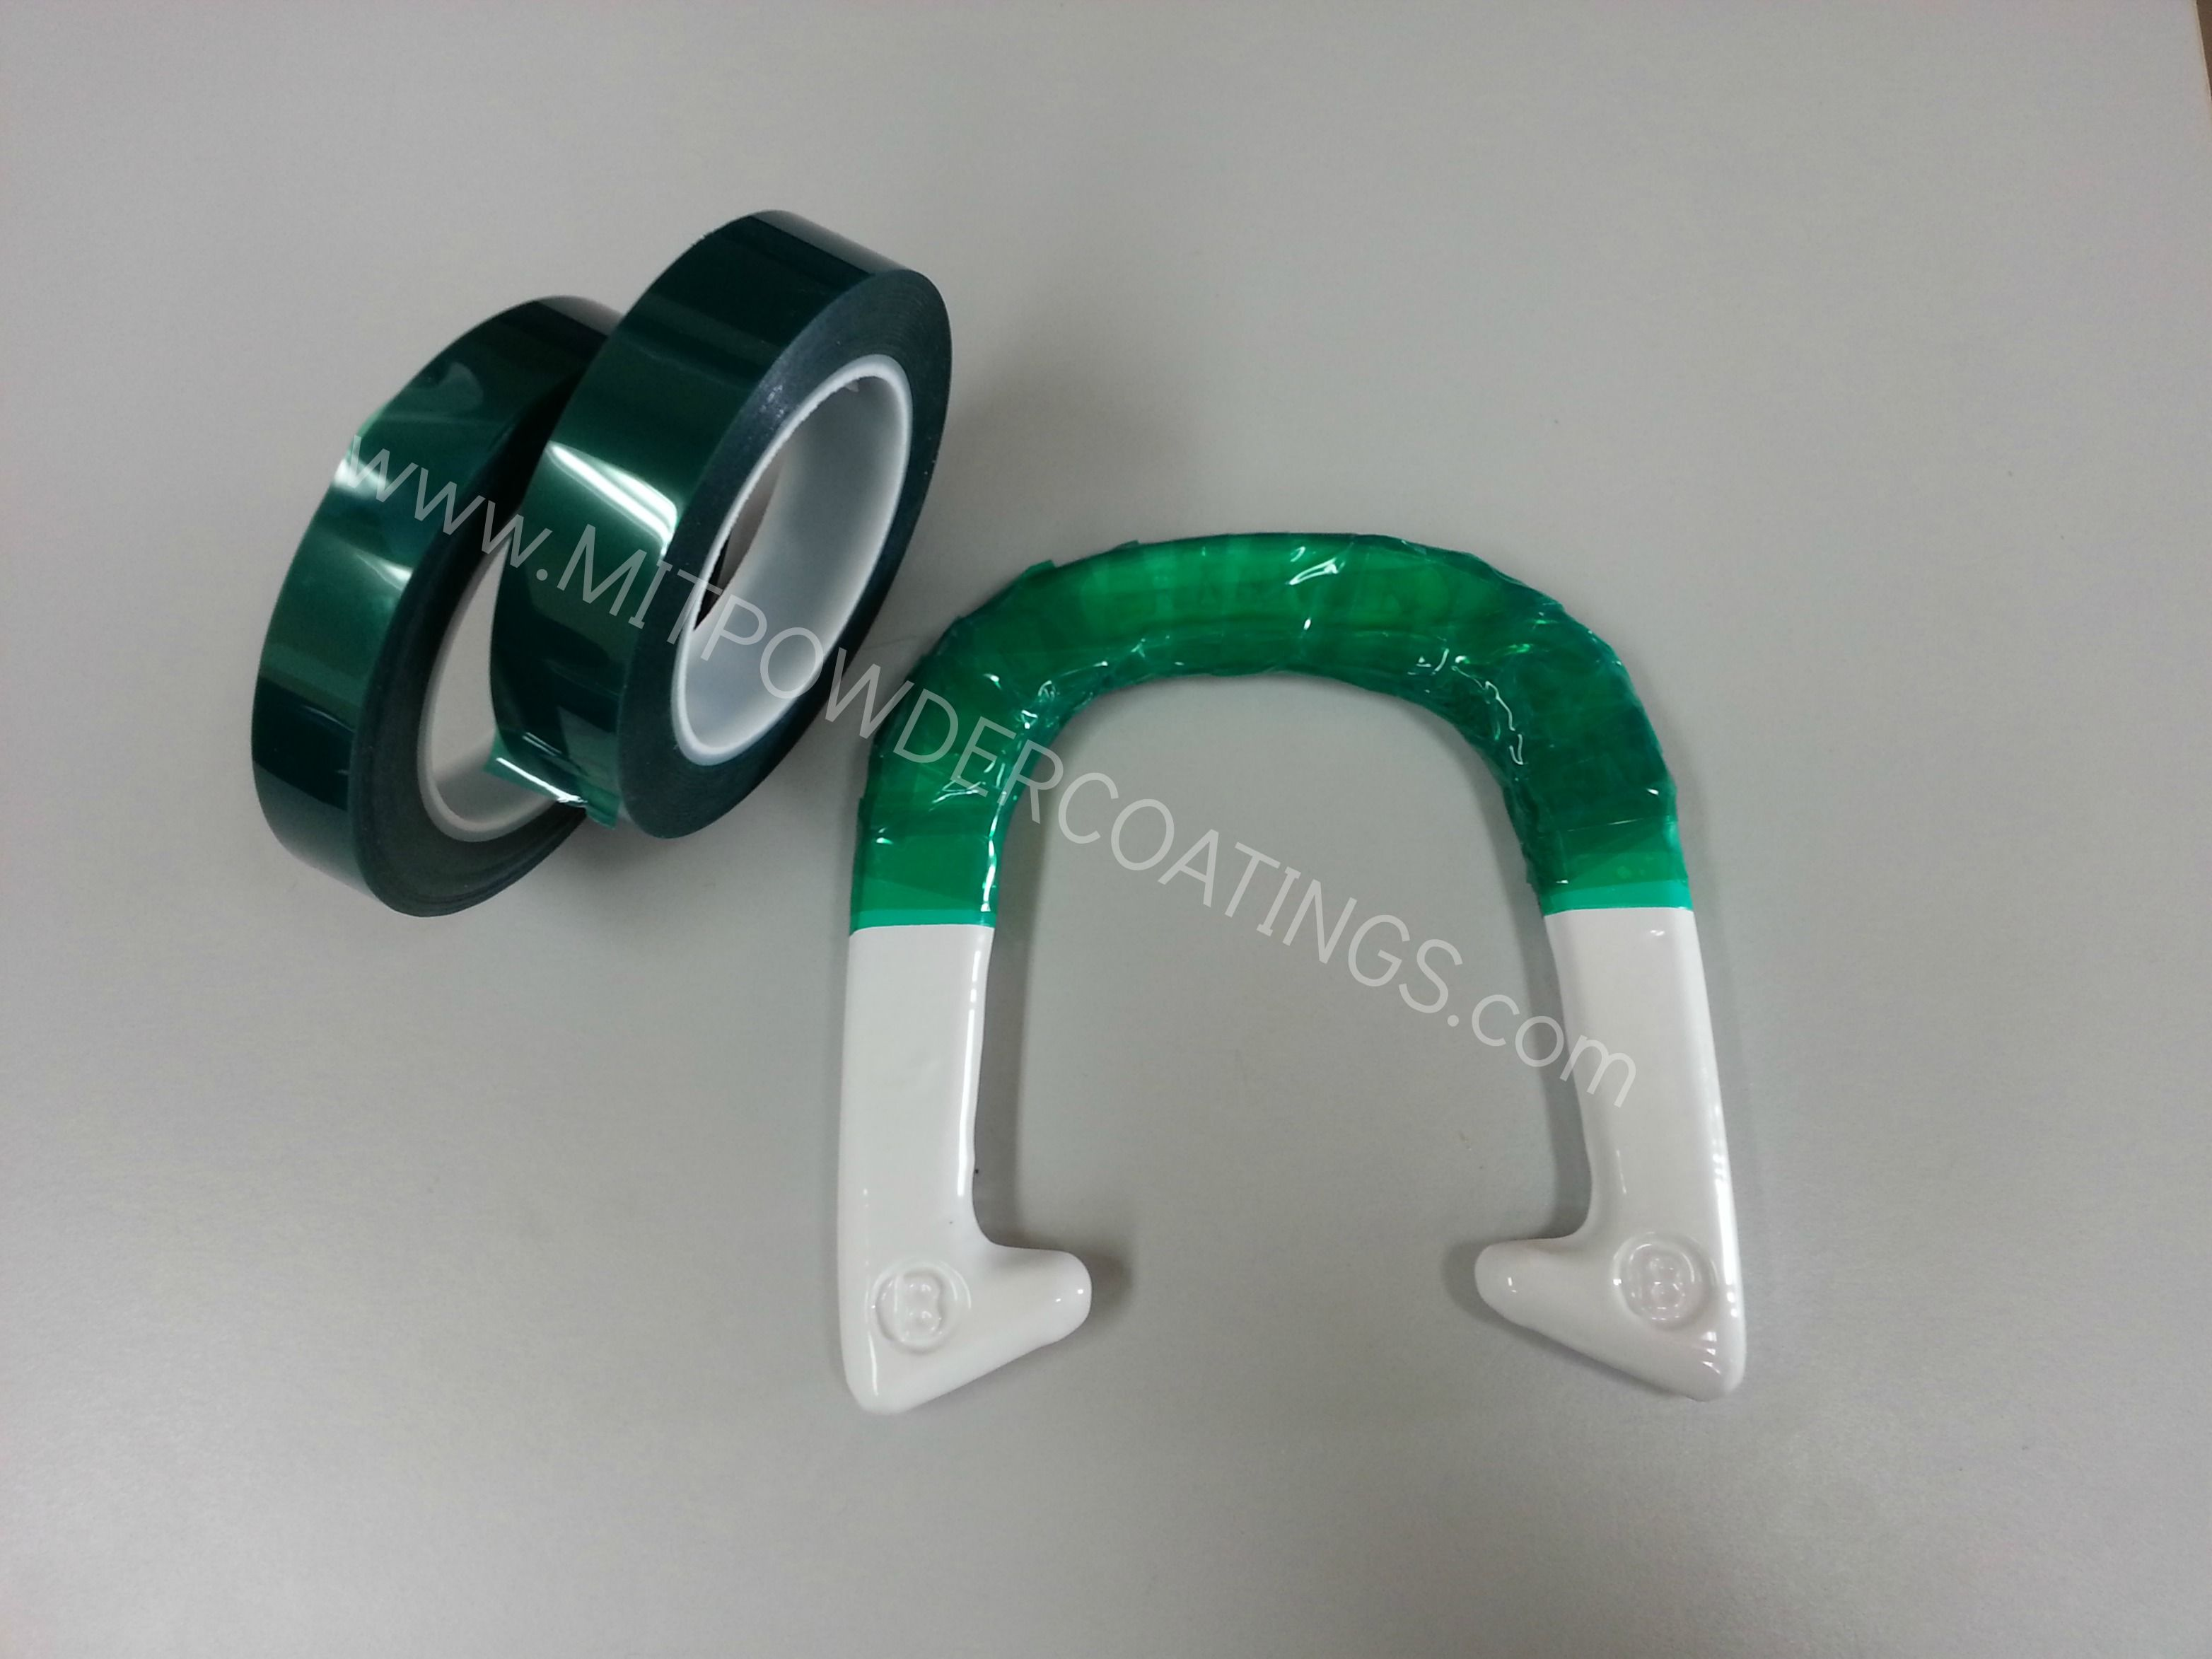 Polyester Heat Green Tape Horse Shoe Shown In Sky White Powder Coating Pesw 500 G9 By Mit Powder Coatings Http Masking Tape Powdercoating High Gloss White